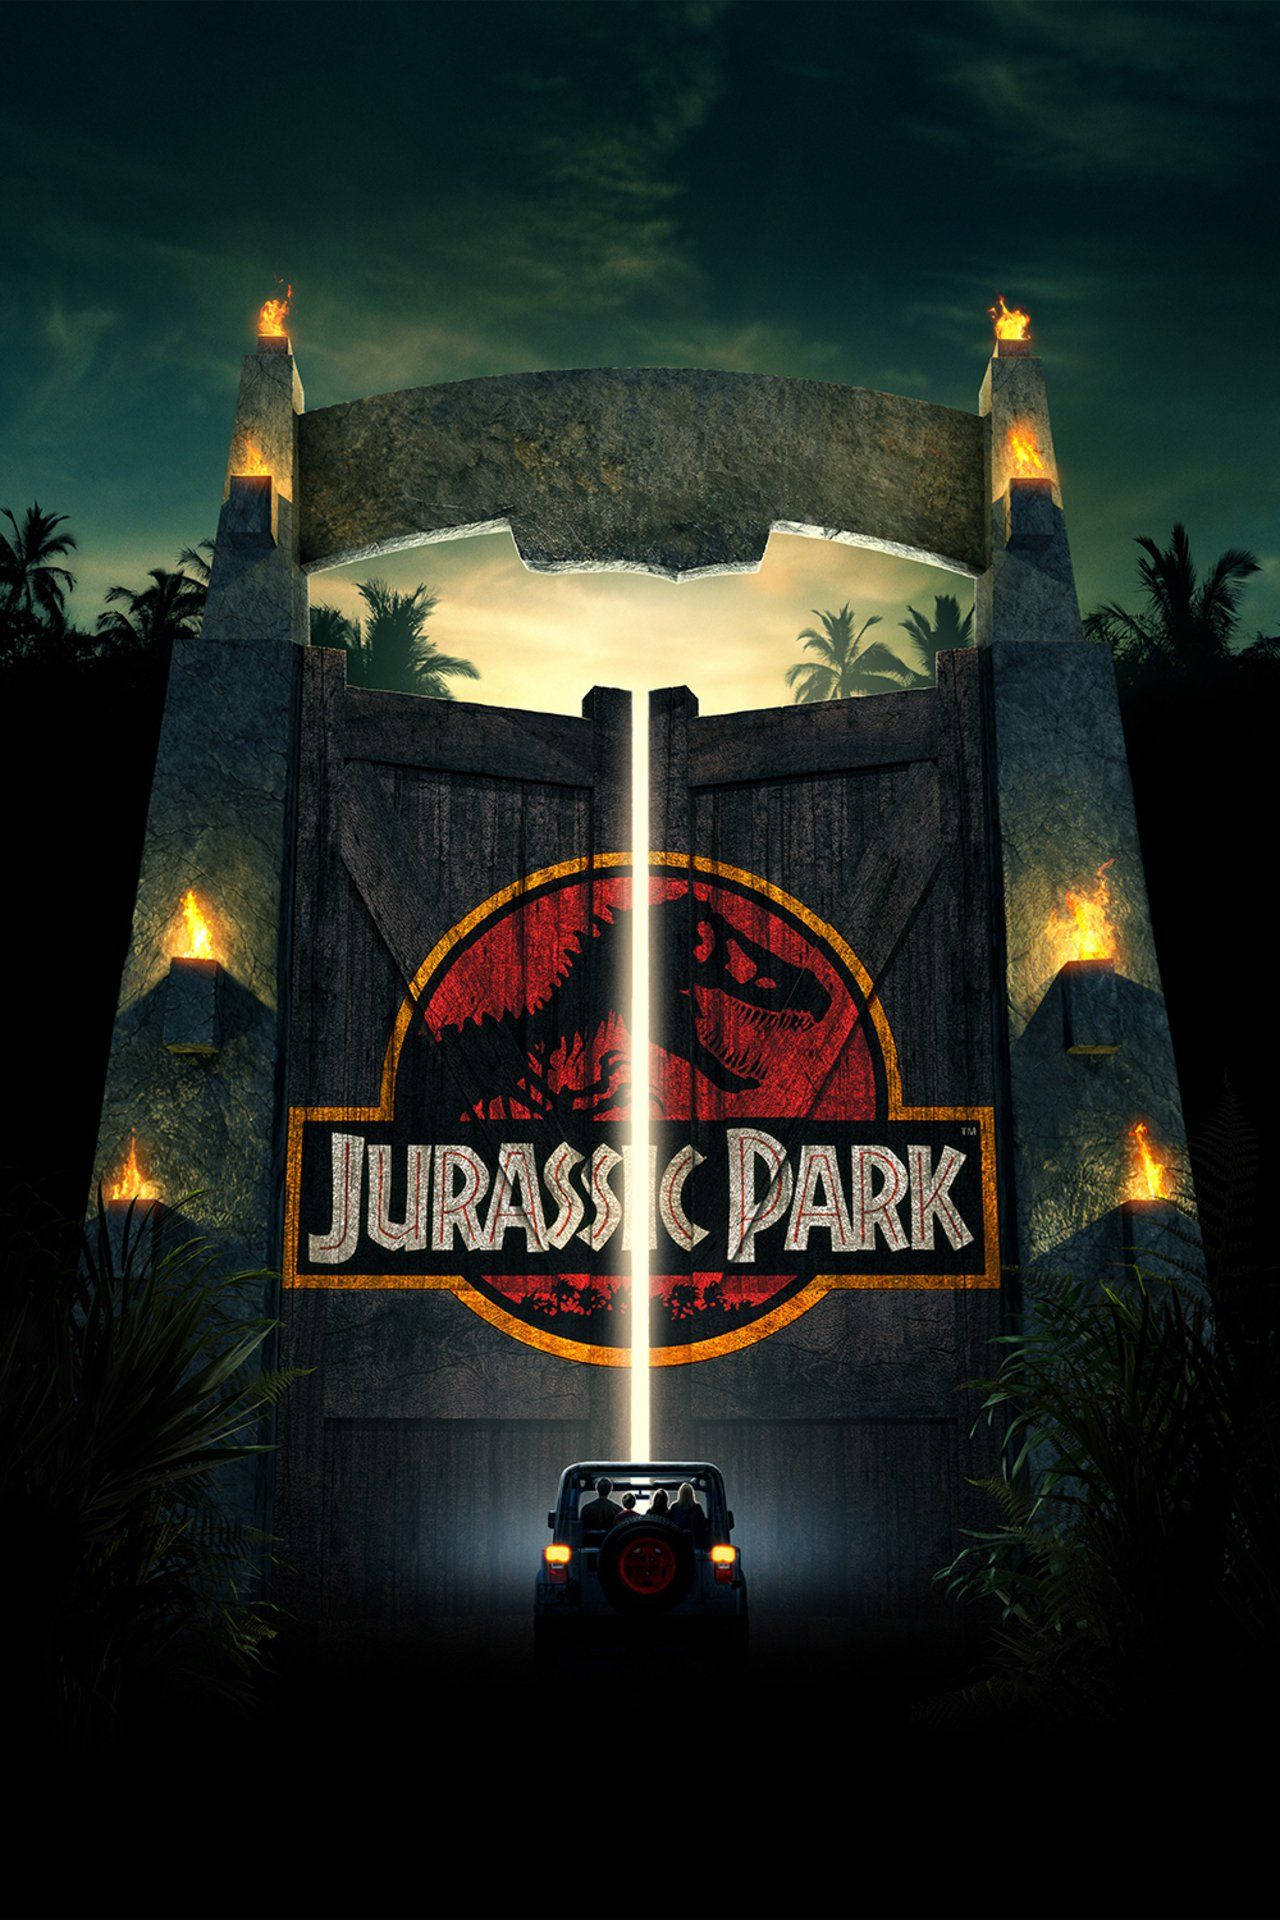 Pin by Tom Gallaugher on Movie Posters Jurassic park